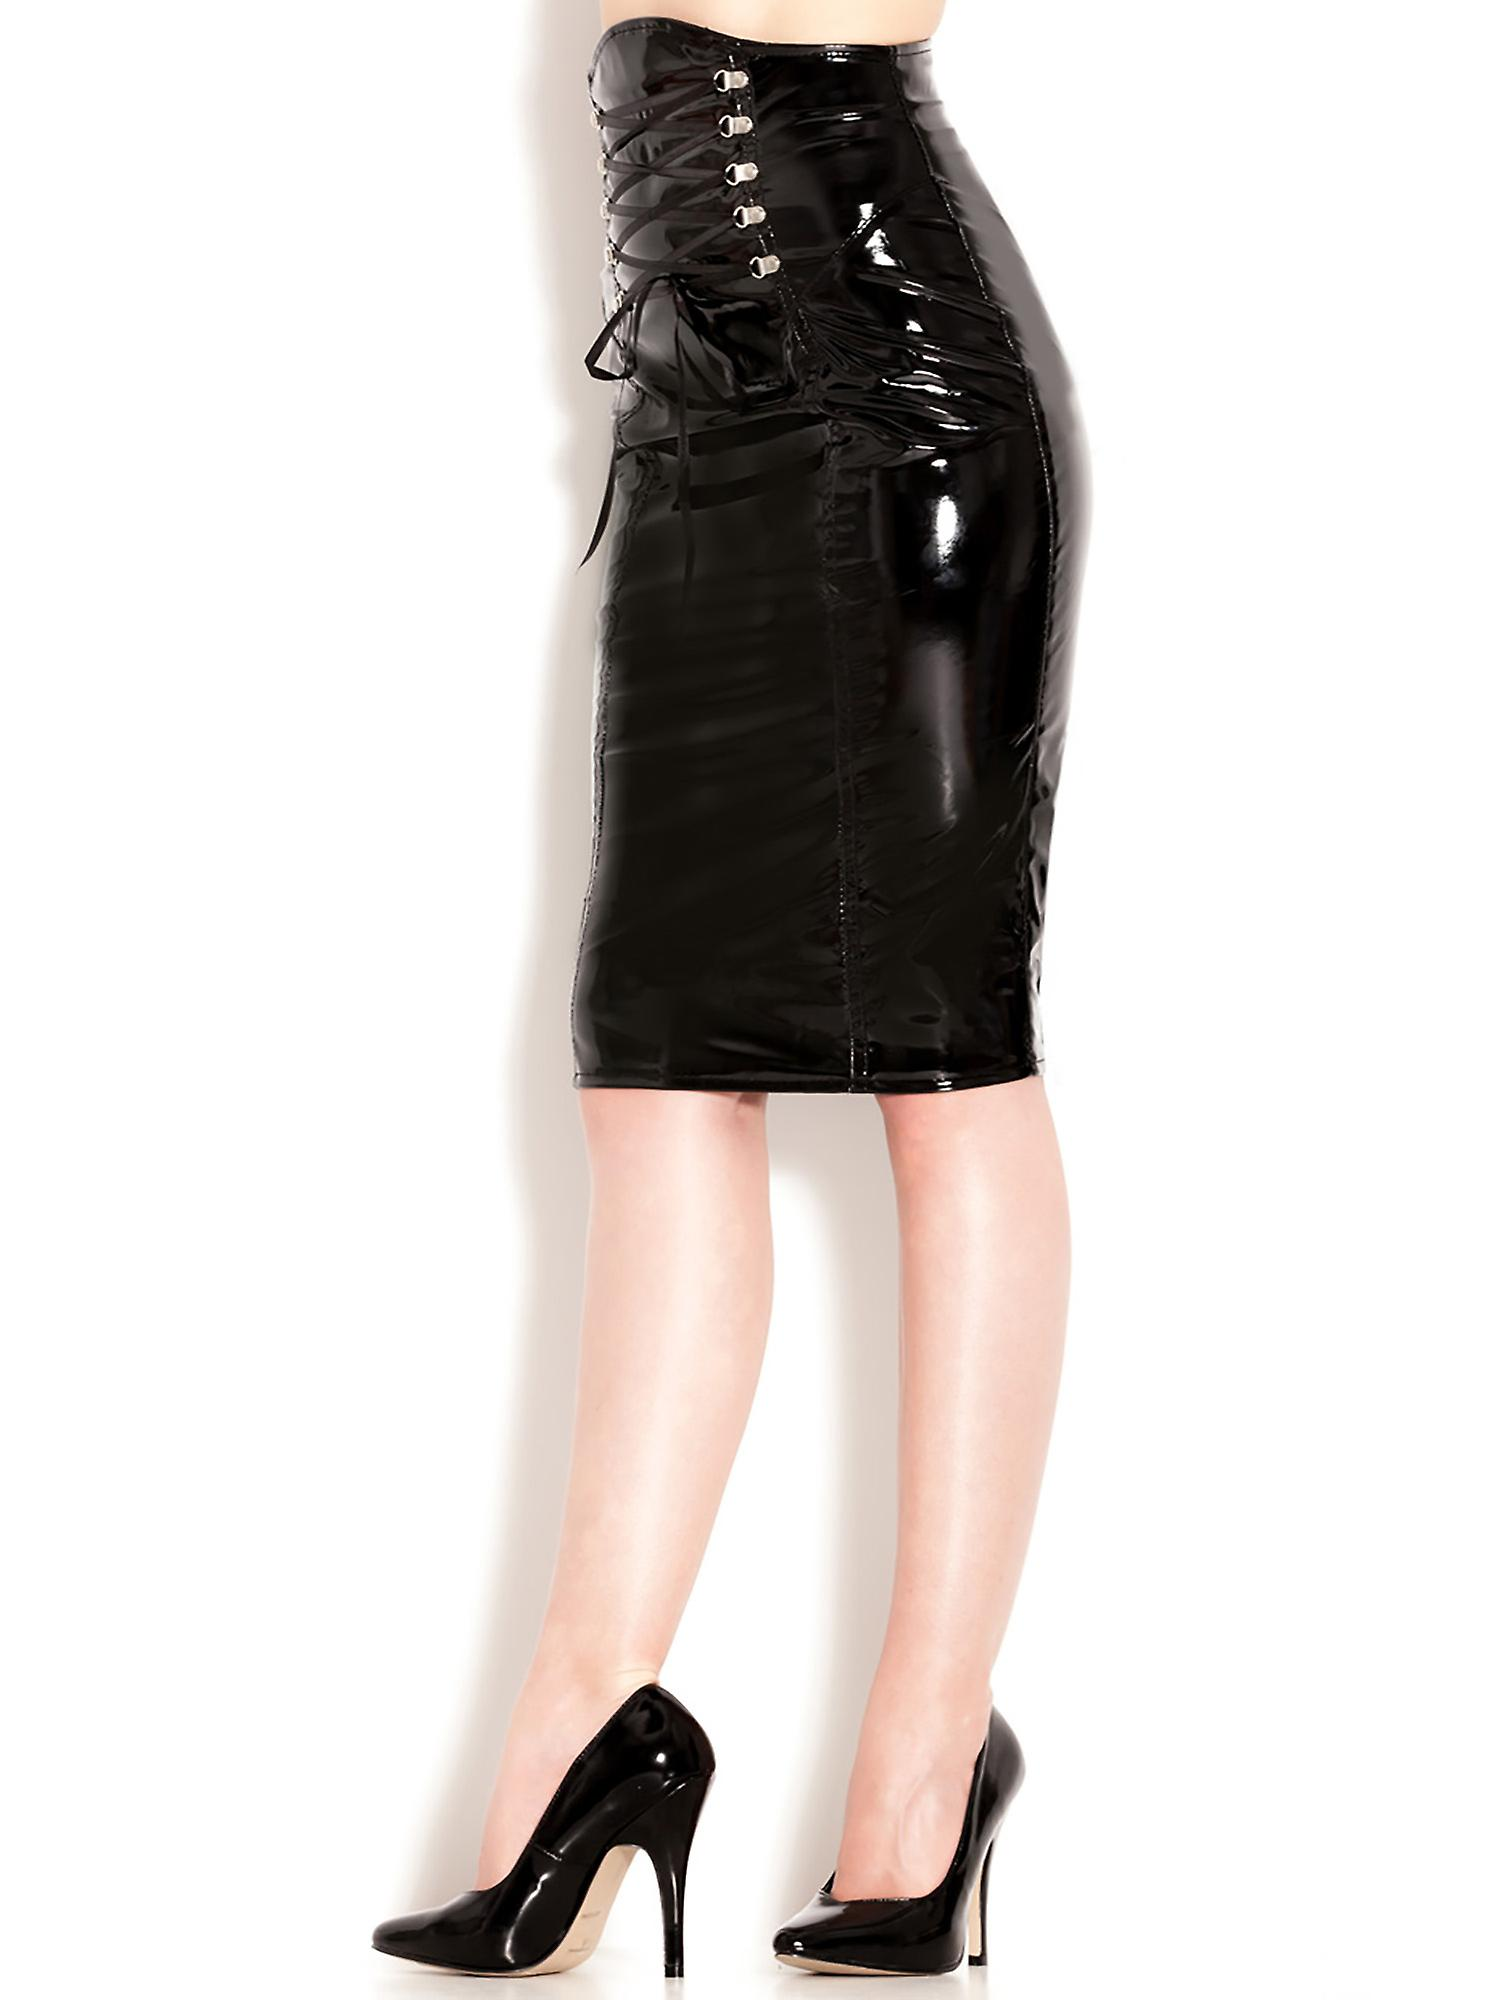 Honour Women's Sexy Pencil Skirt in PVC Black Hourglass Secretary Style Outfit